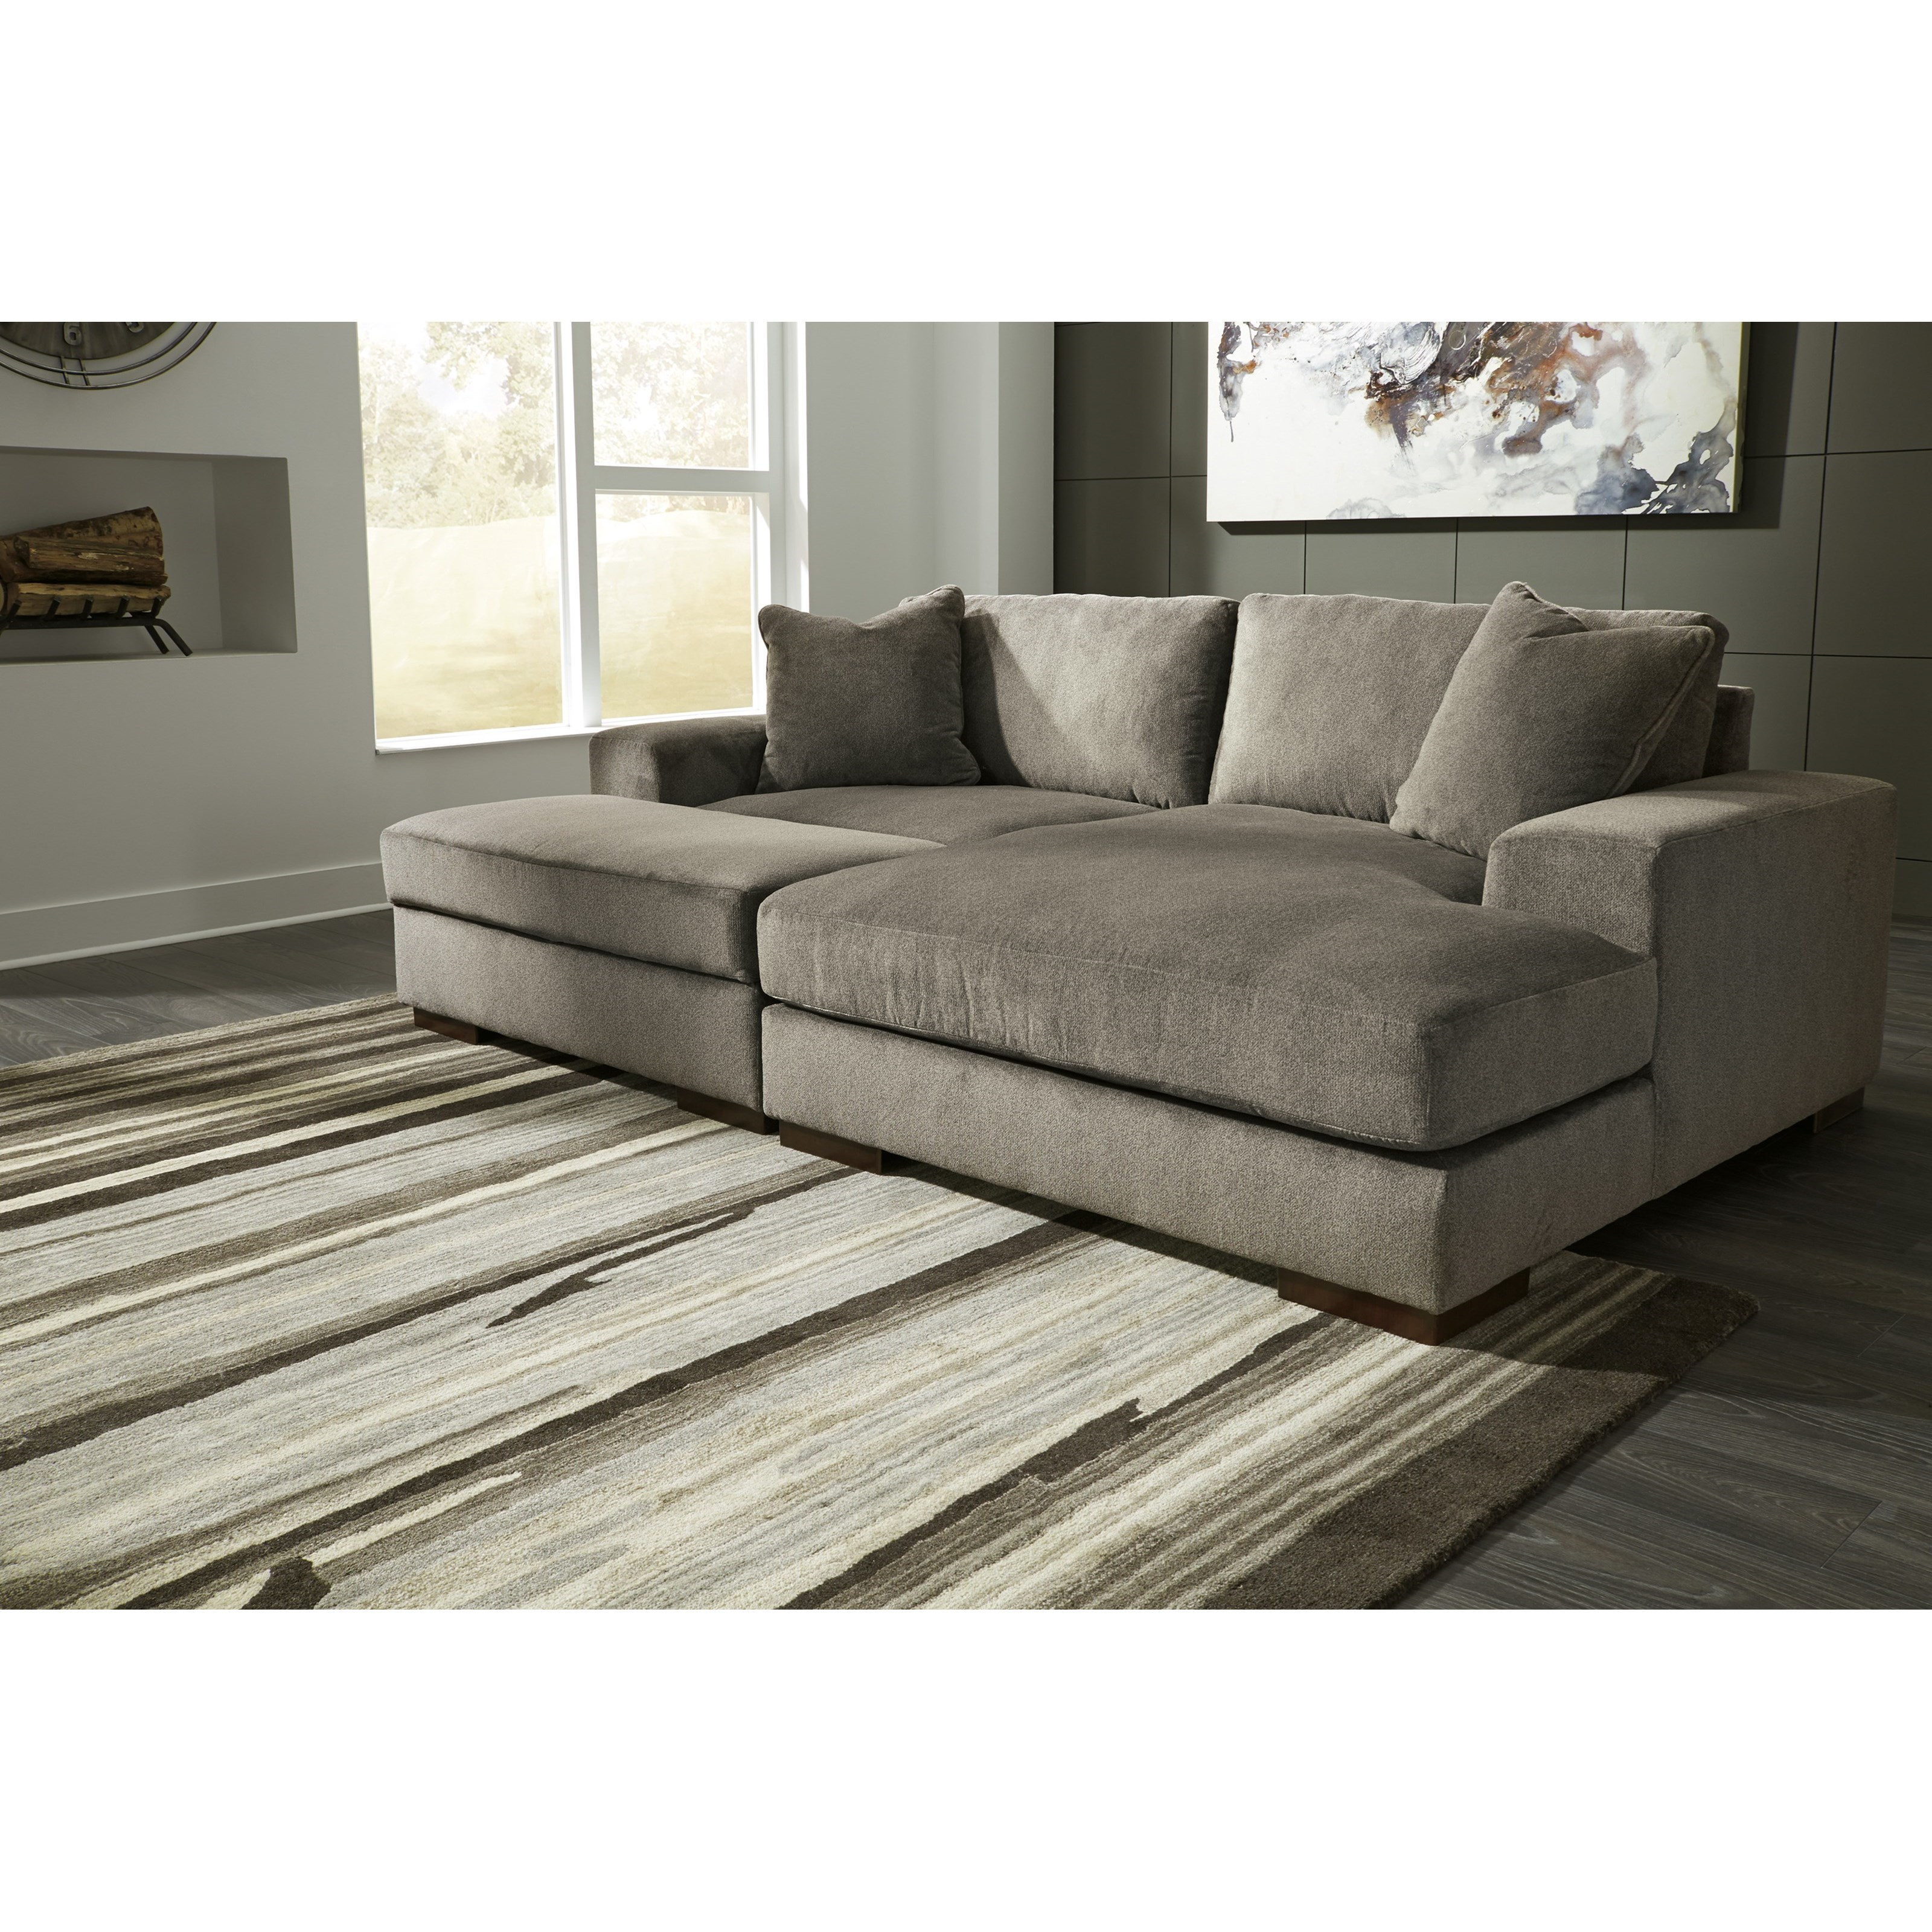 Sectional Sofas At Jcpenney: Benchcraft Manzani Contemporary 3-Piece Sectional With